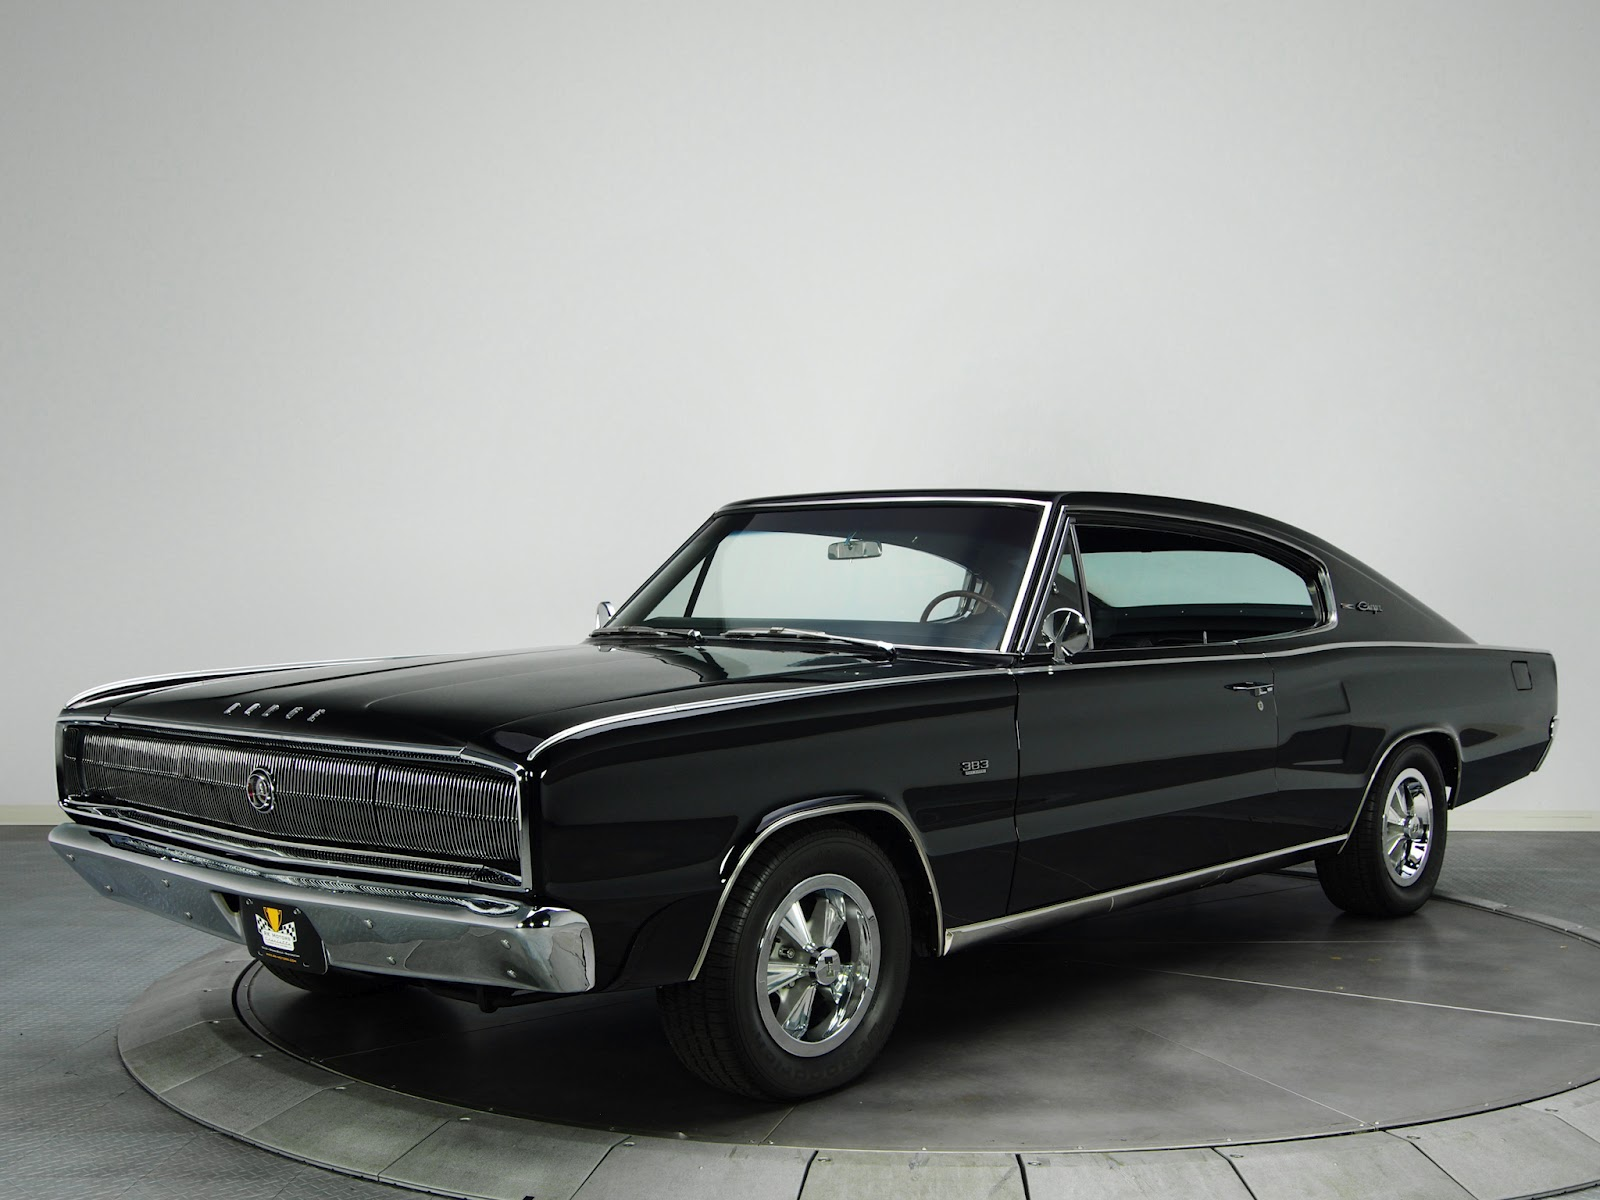 Retro Cars: Dodge Charger 383 '1966